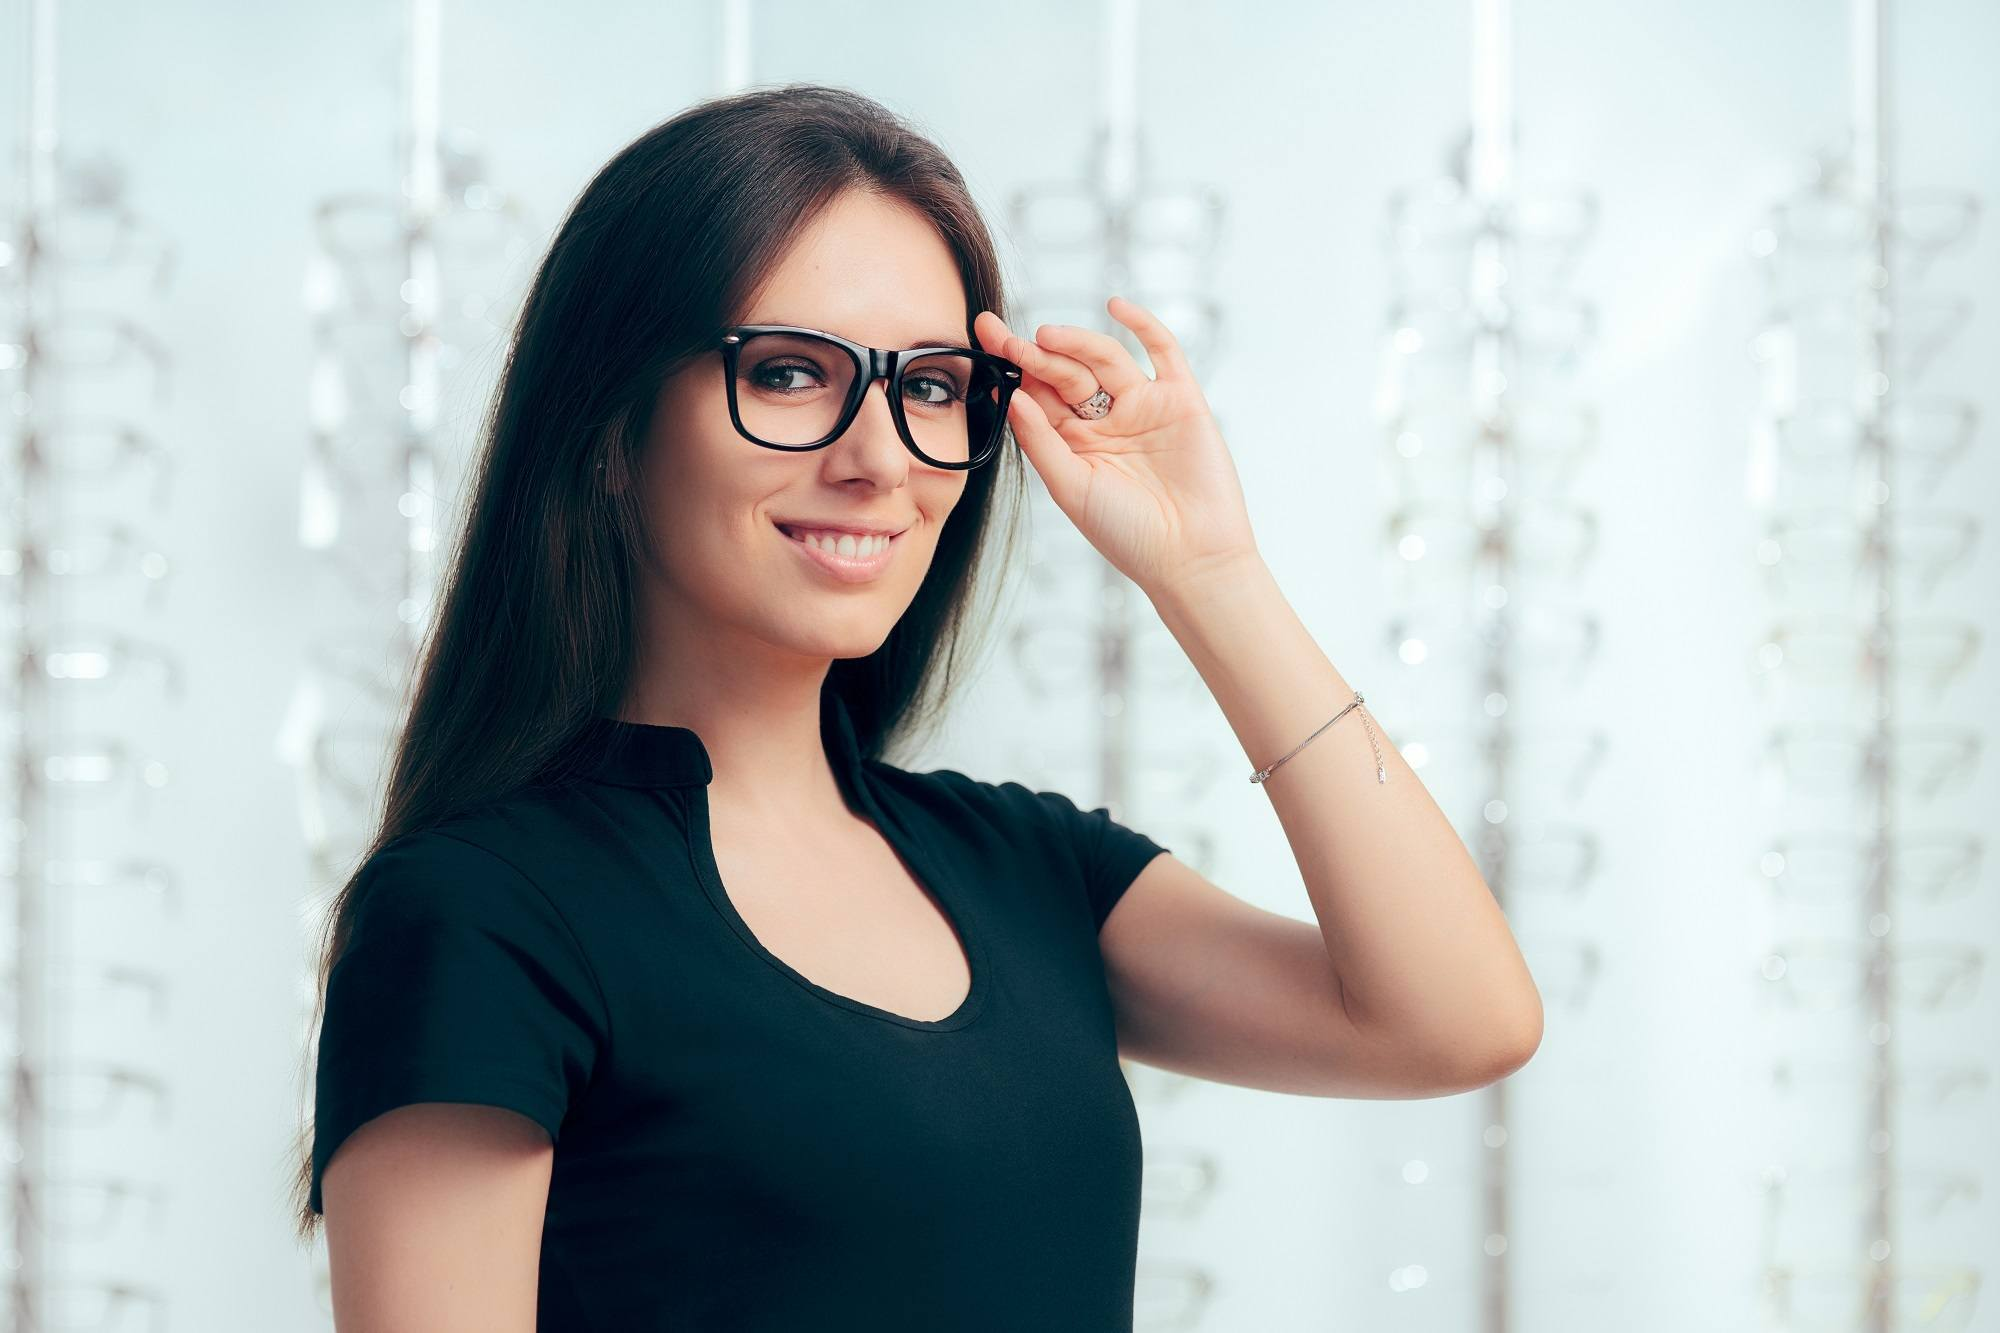 Bespectacled Beauty: 5 Best Hairstyles For Glasses Wearers